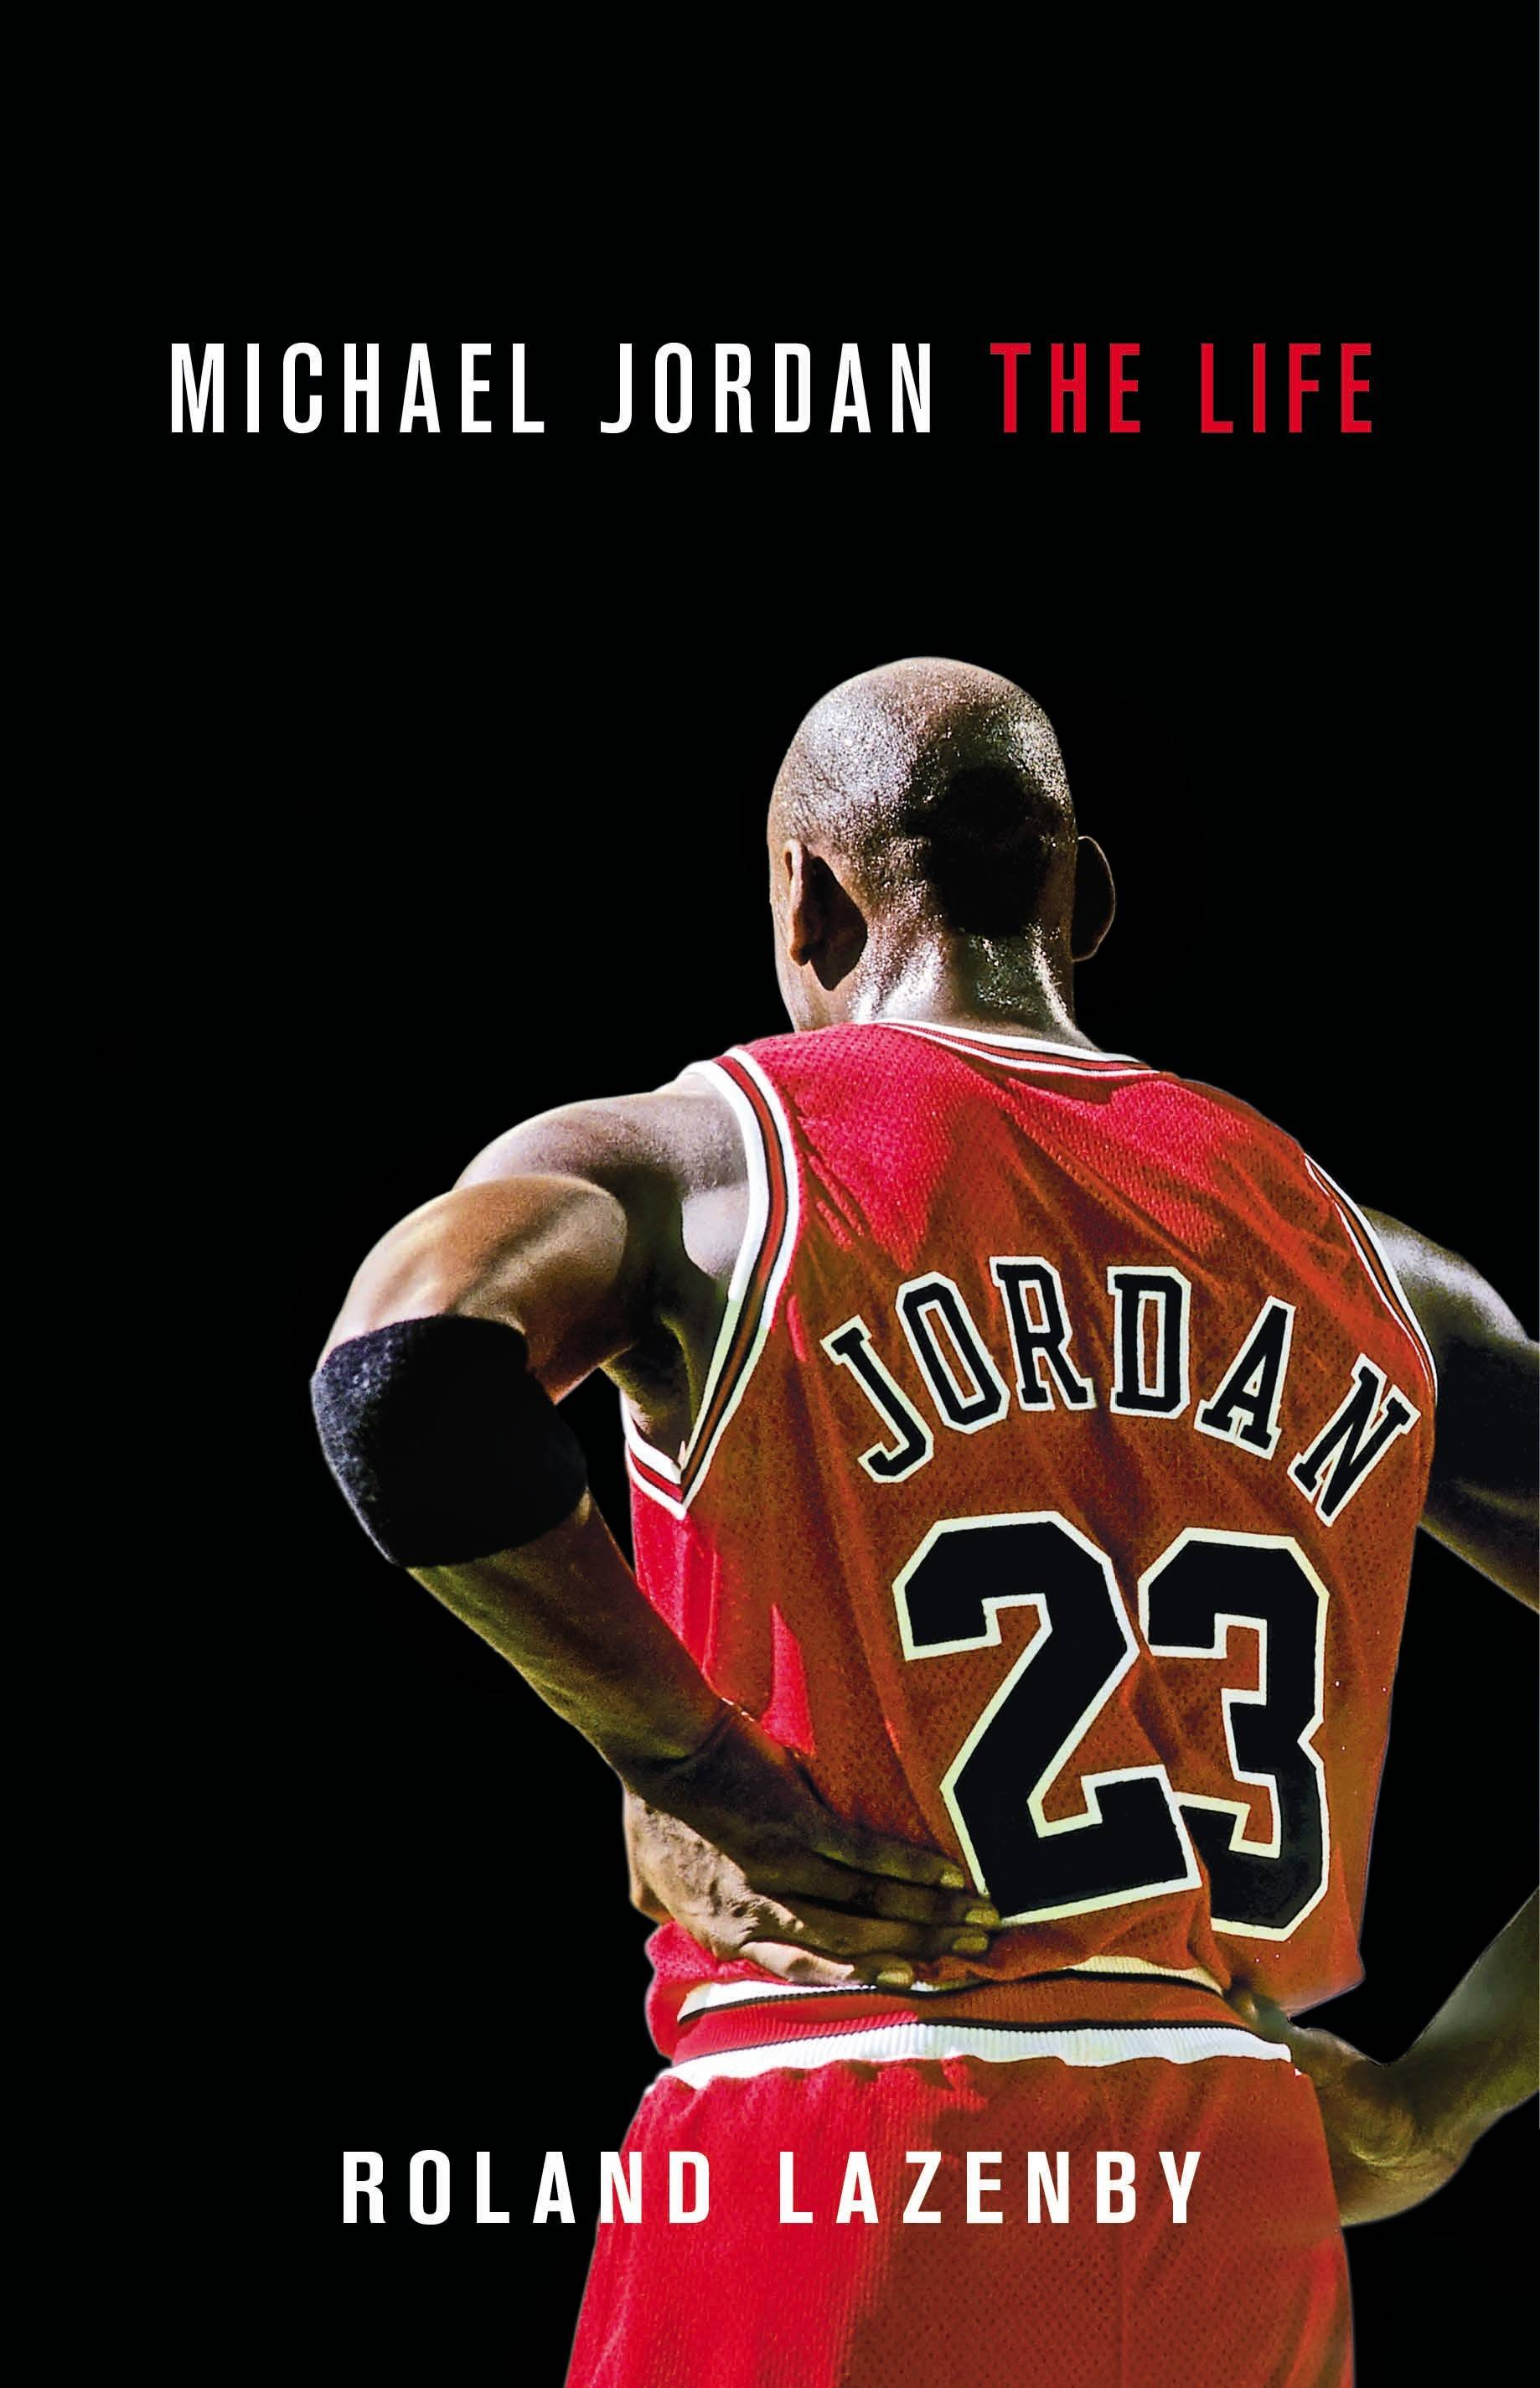 This is the cover of a new biography on Bulls superstar Michael Jordan.